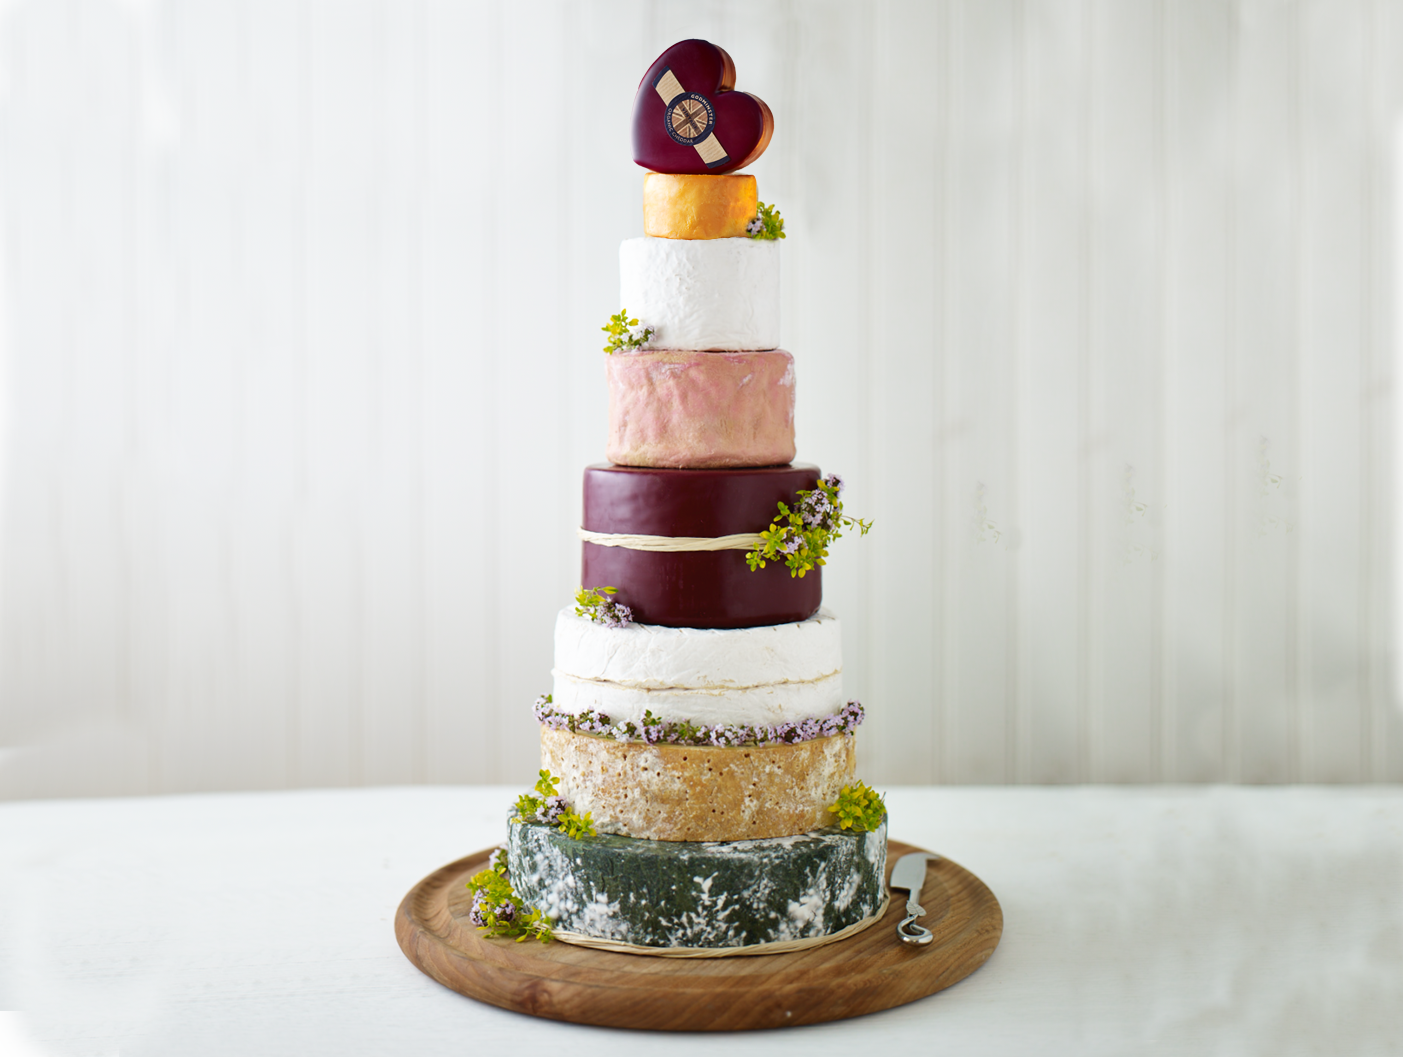 Godminster Wedding Cheese Cake - Available to Order Online - delivery nationwide UK